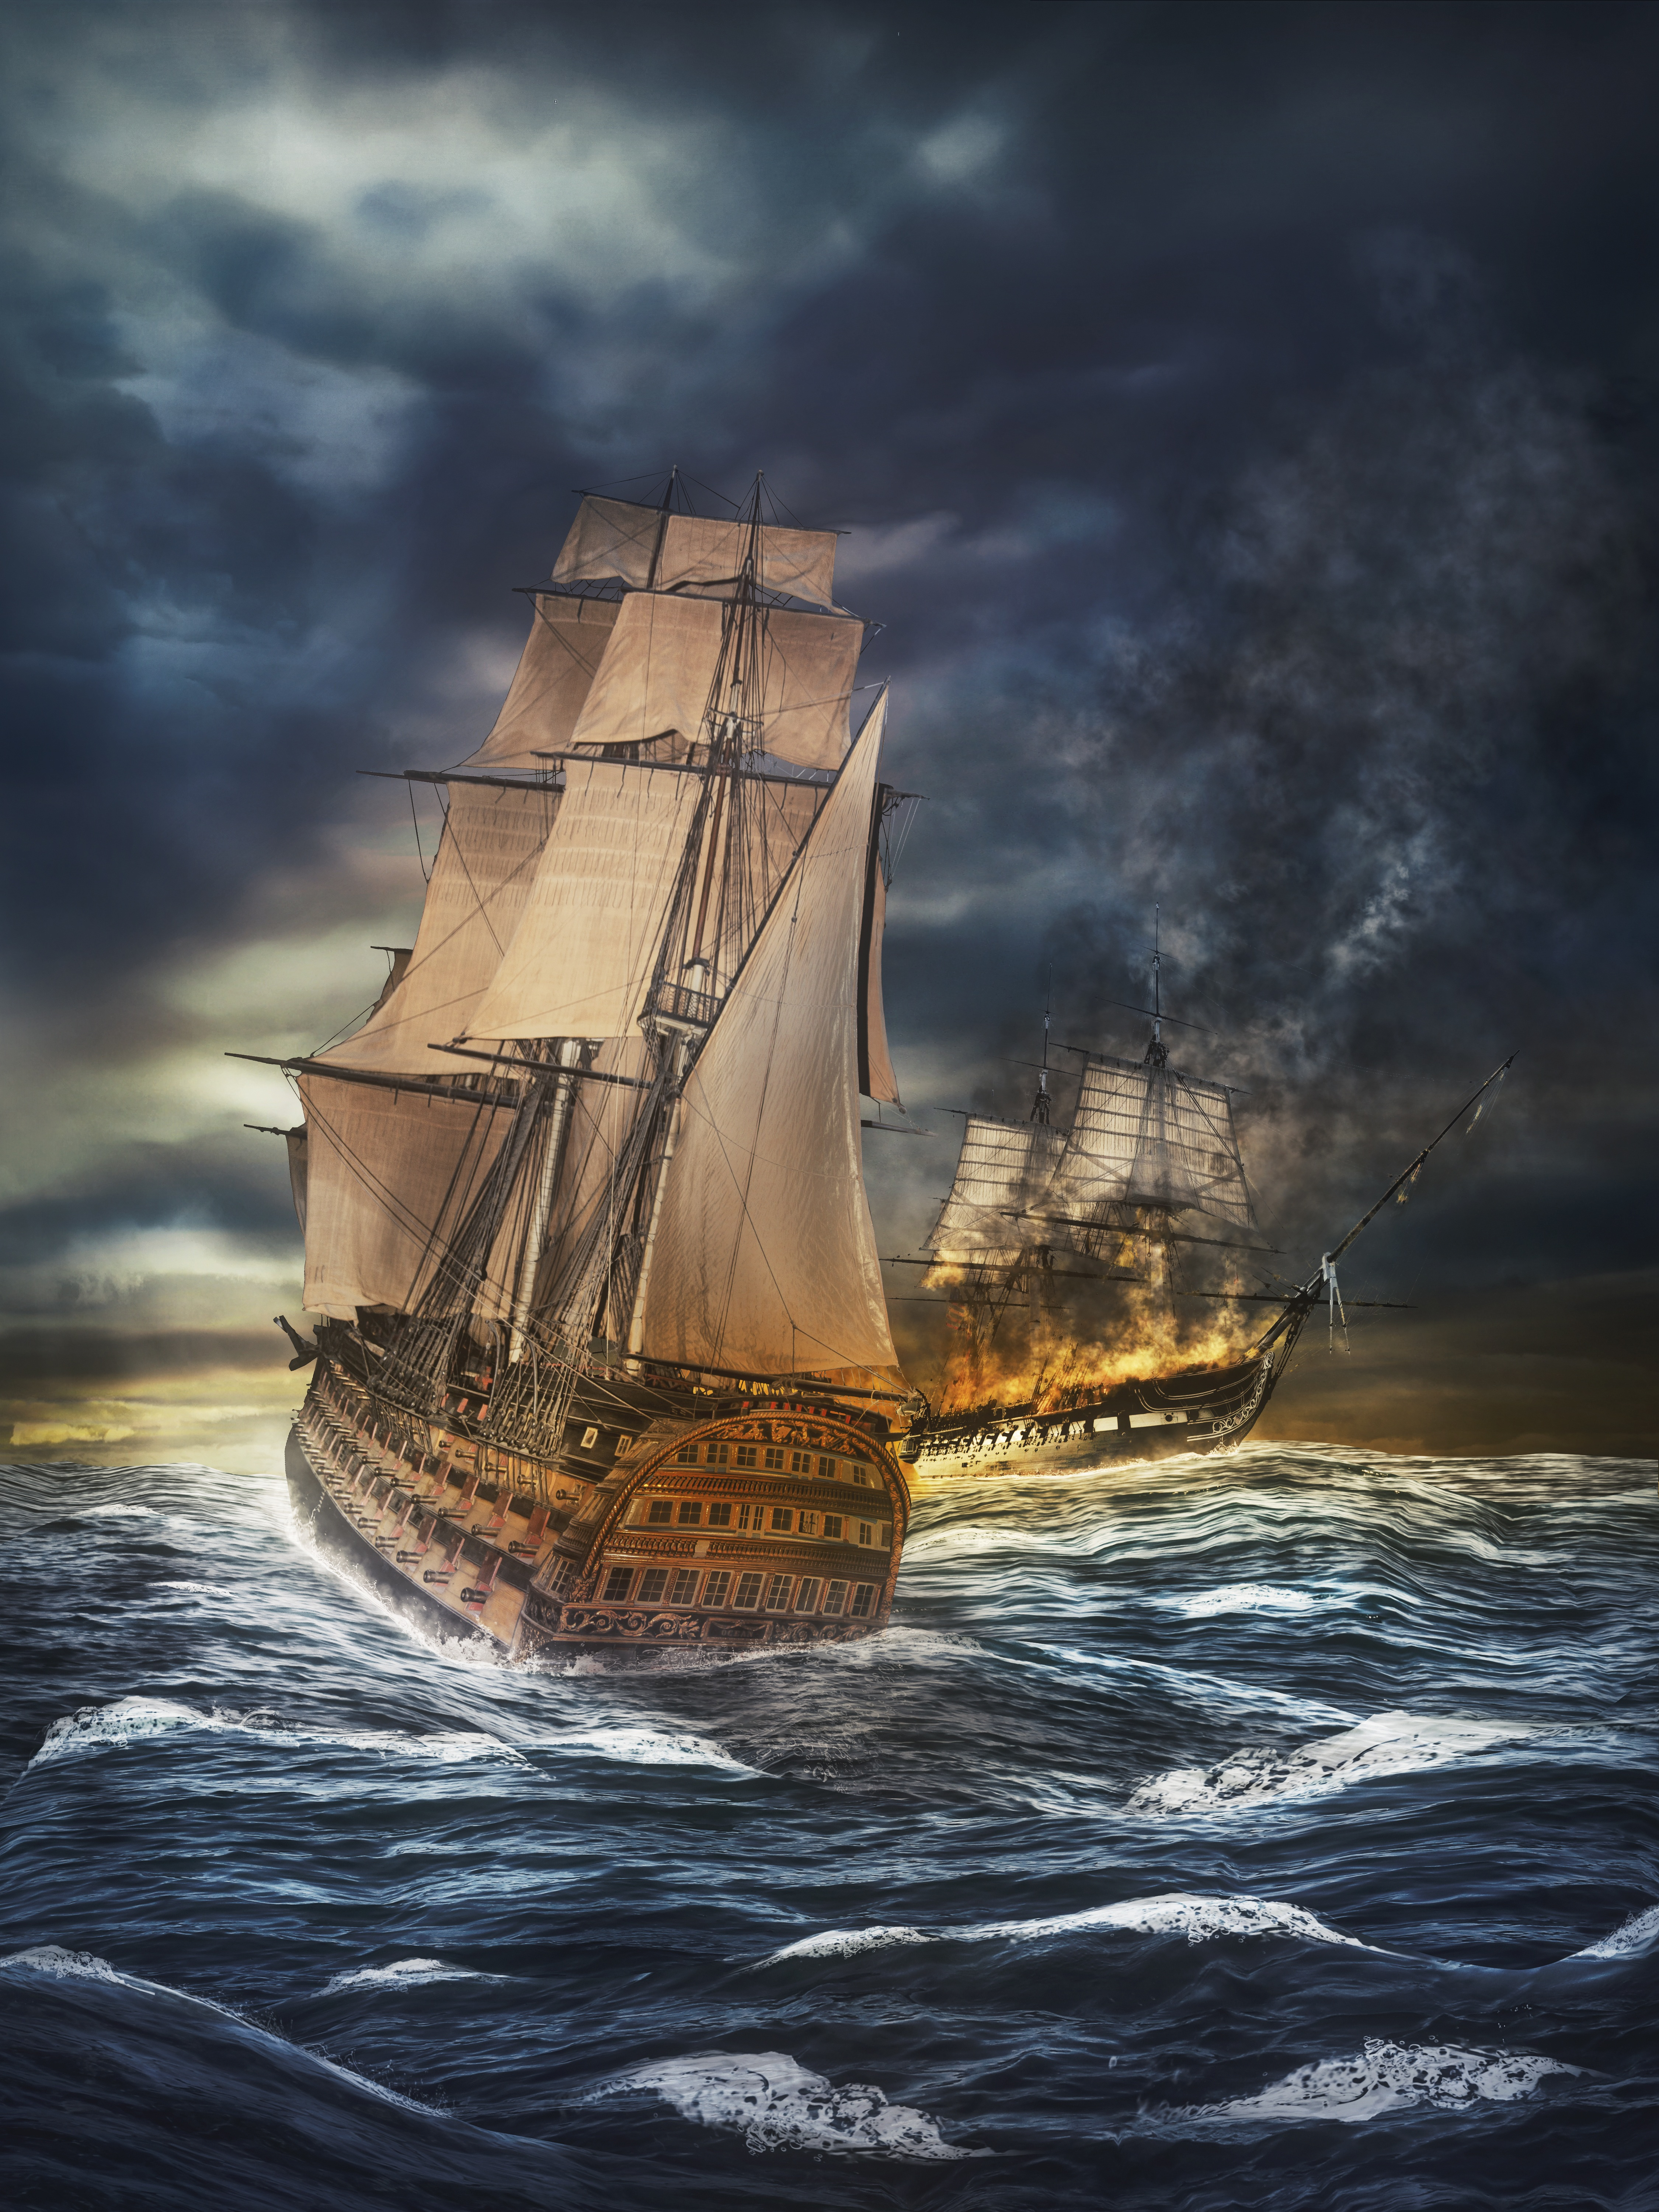 61345 download wallpaper Art, Ships, Sea, Storm, Sea Battle, Battleship, Photoshop screensavers and pictures for free